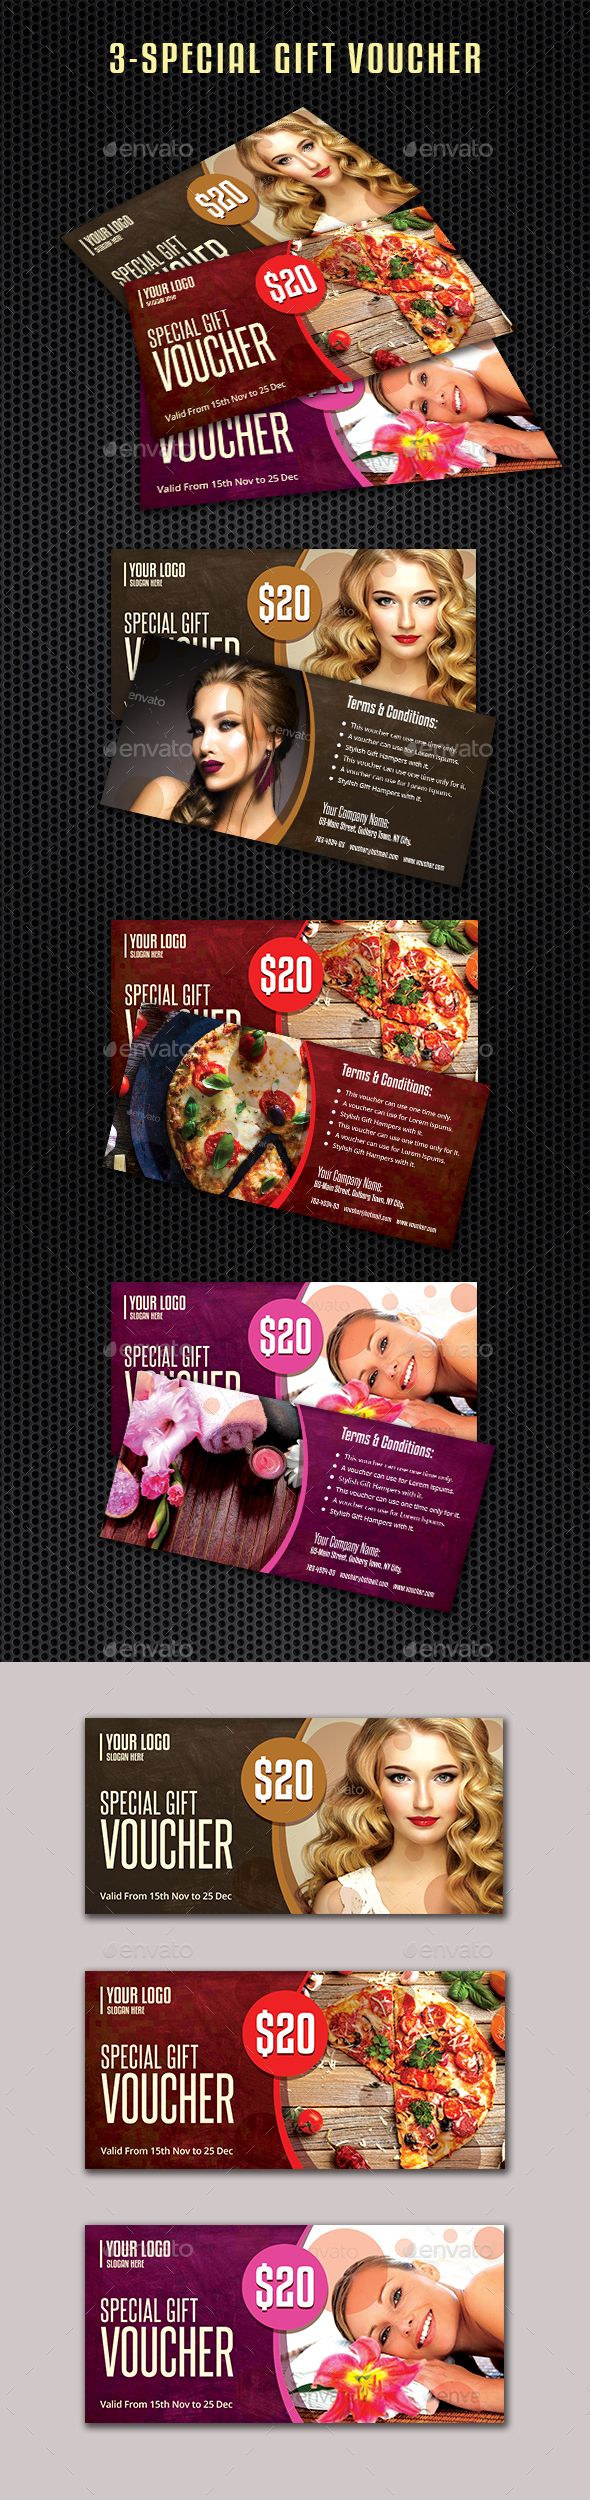 #Gift #Vouchers Template - Loyalty Cards #Cards & #Invites